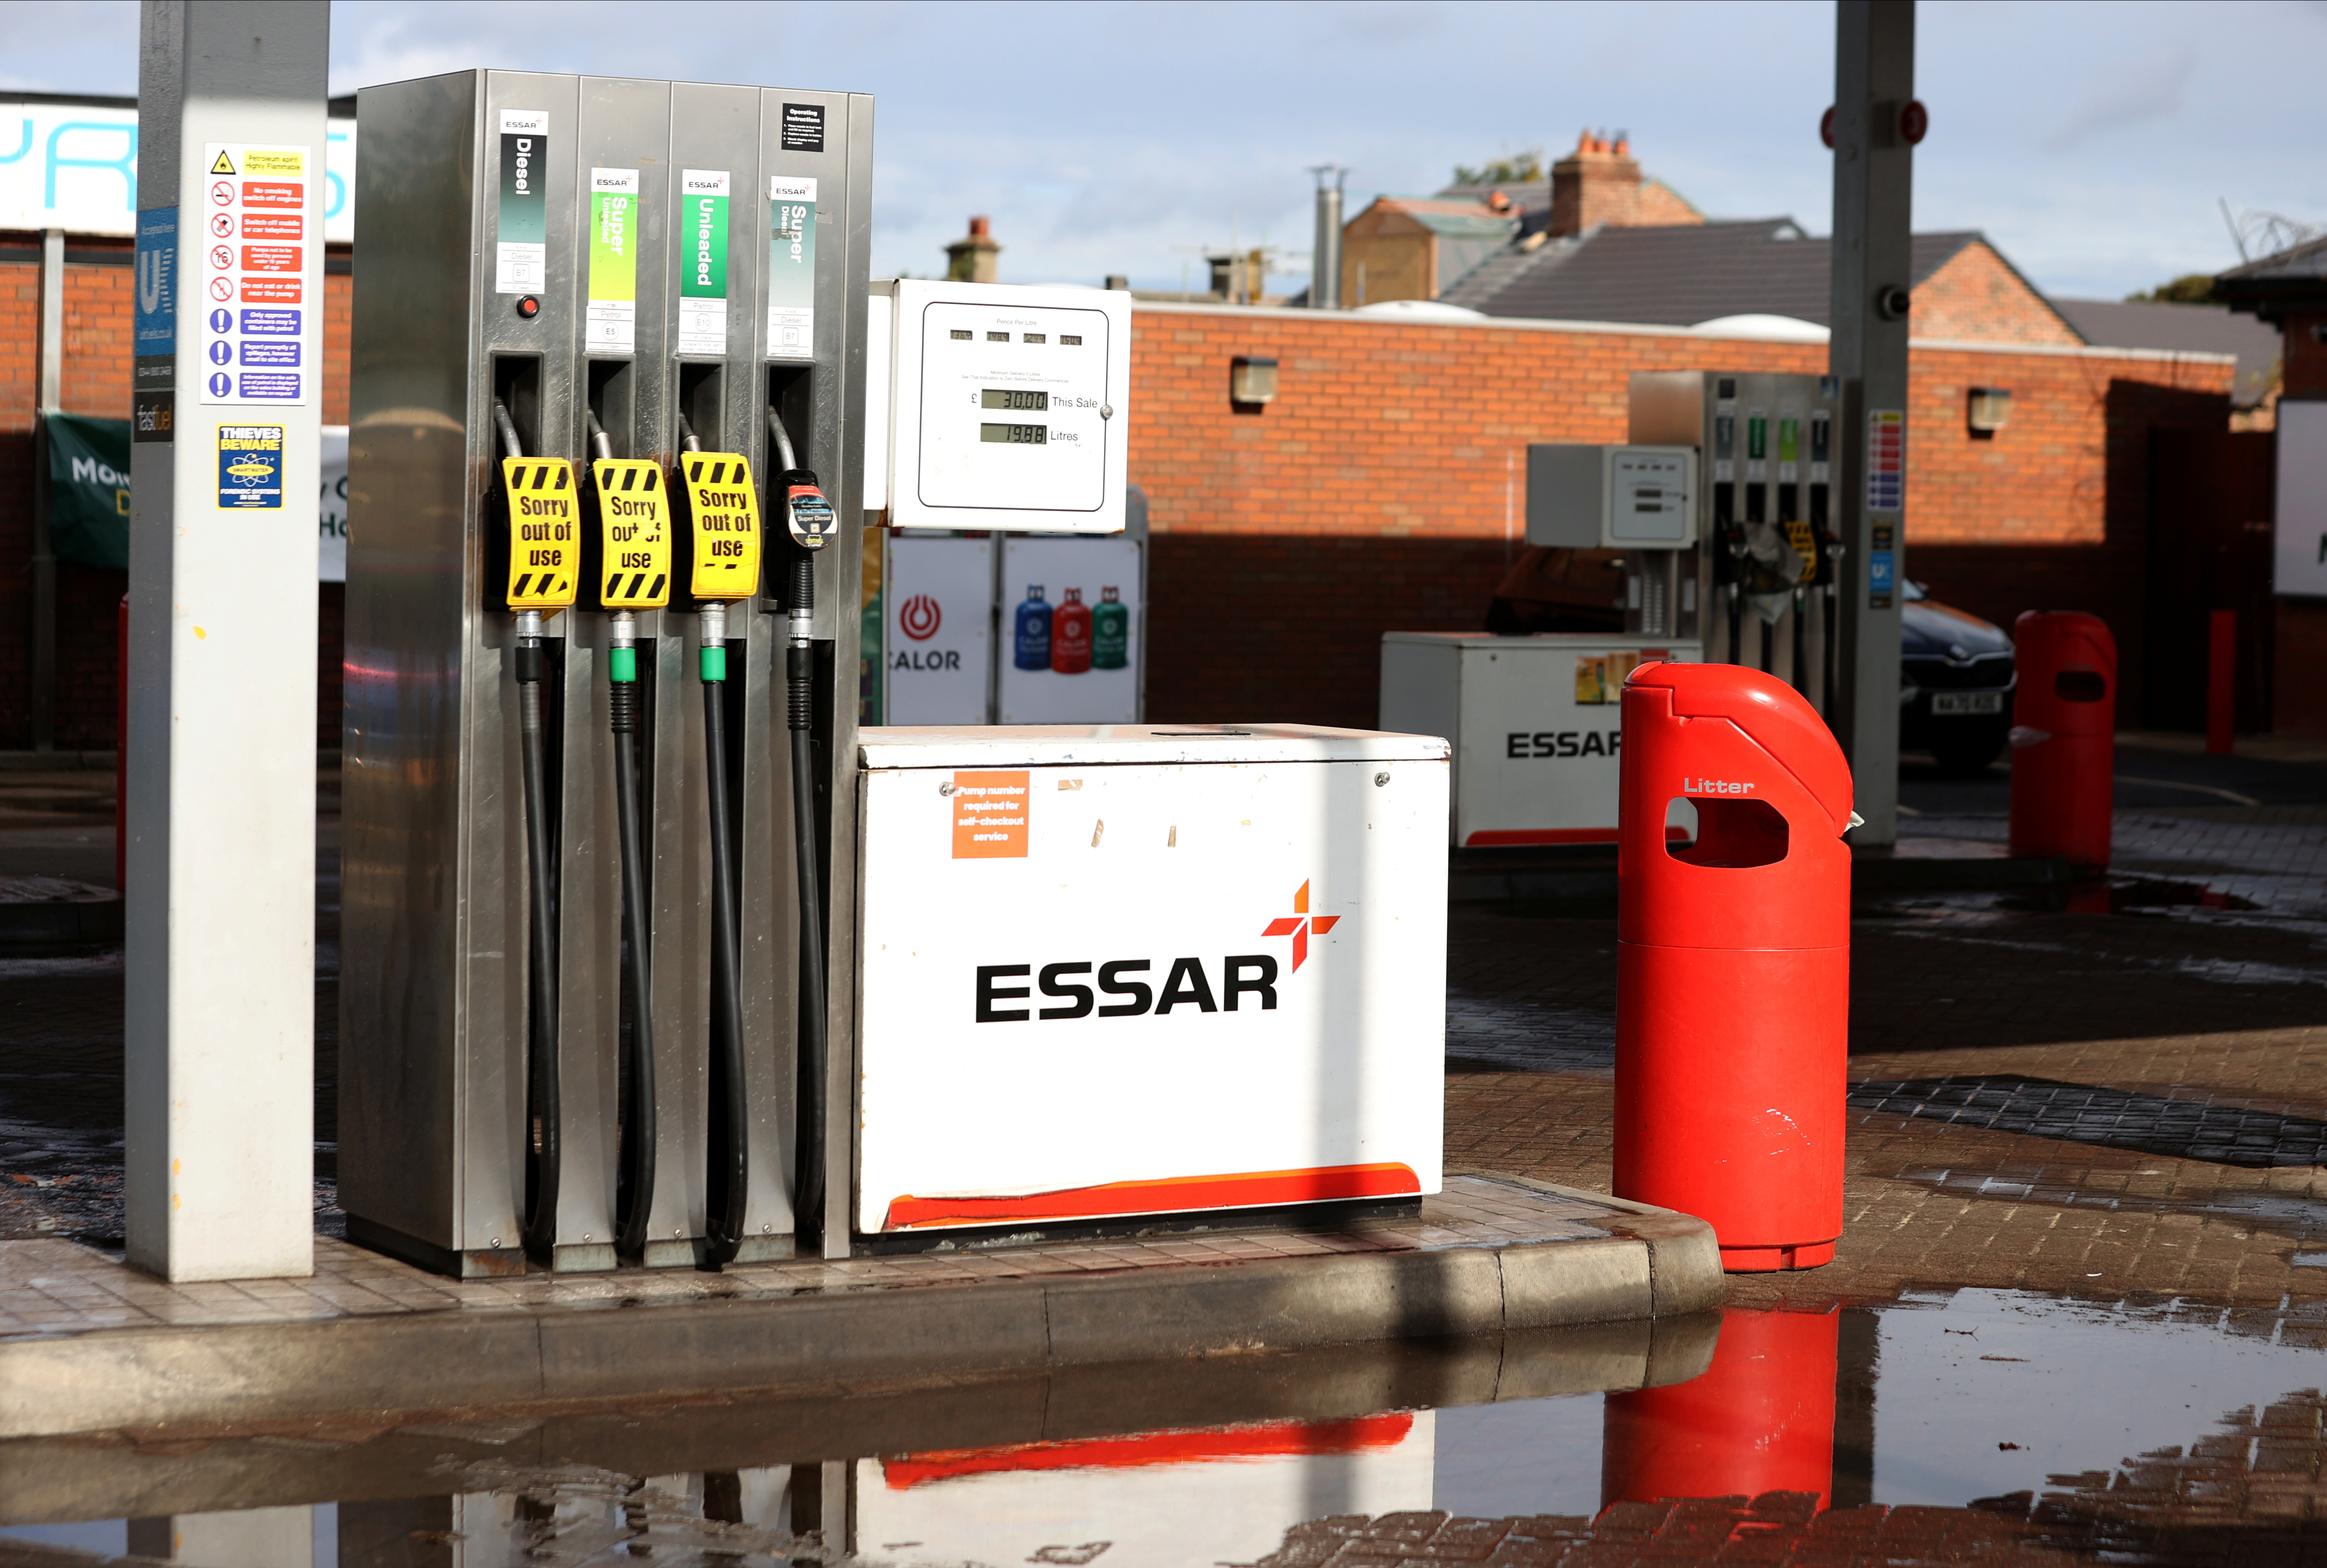 An Essar petrol station with pumps showing no fuel in Stanley, County Durham, Britain, September 27, 2021.  REUTERS/Lee Smith